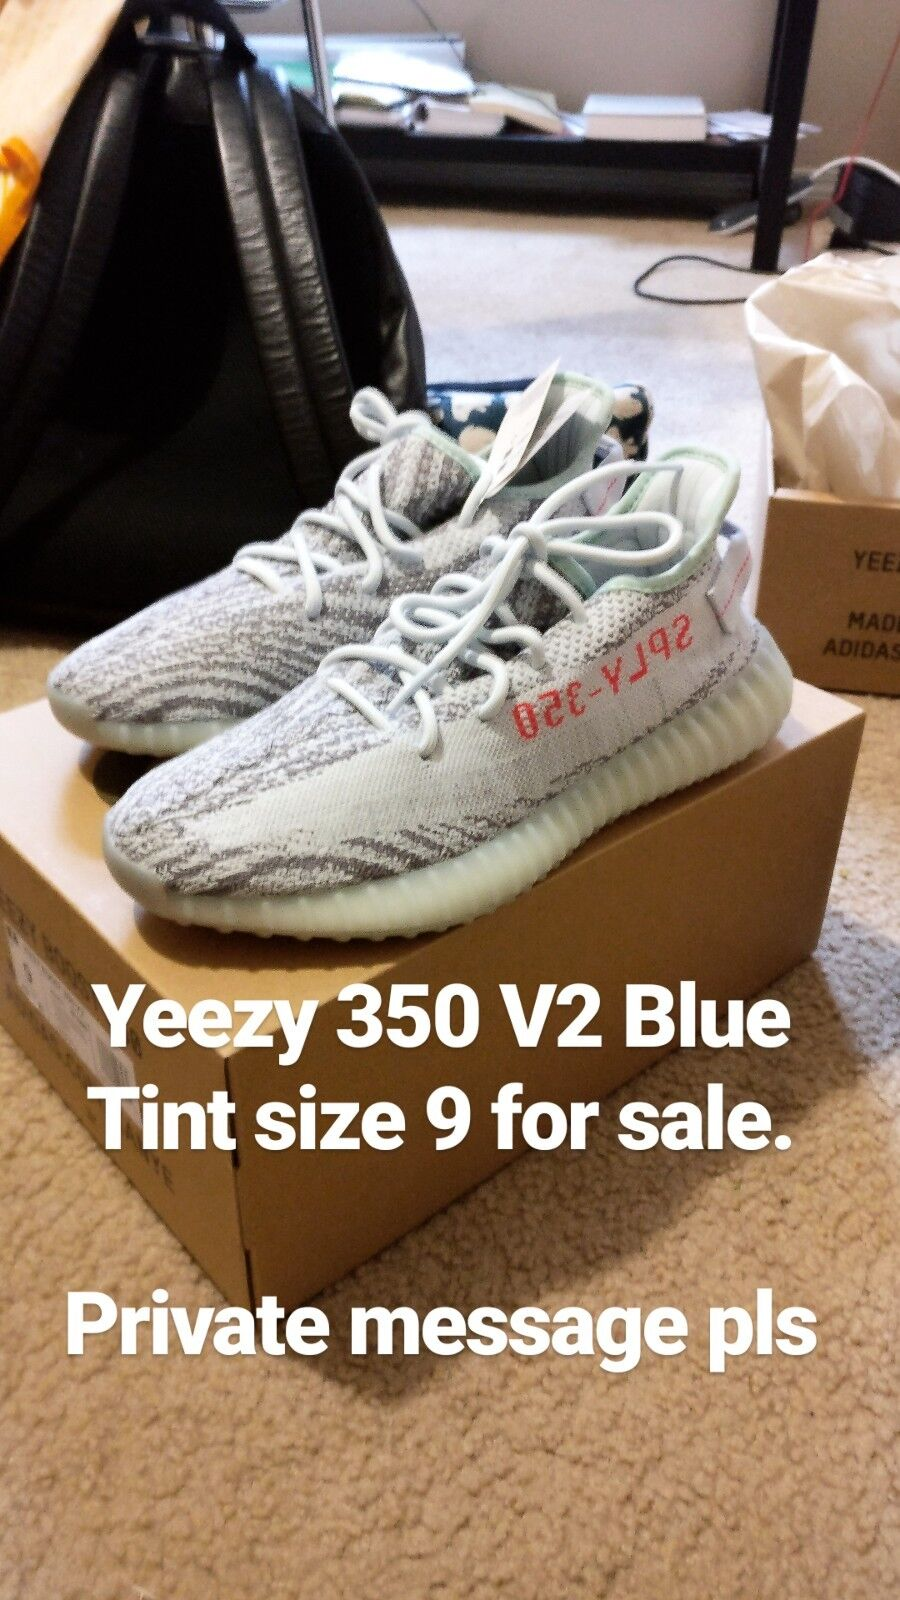 ADIDAS YEEZY BOOST 350 V2 BLUE TINT SIZE 9 US. NEW